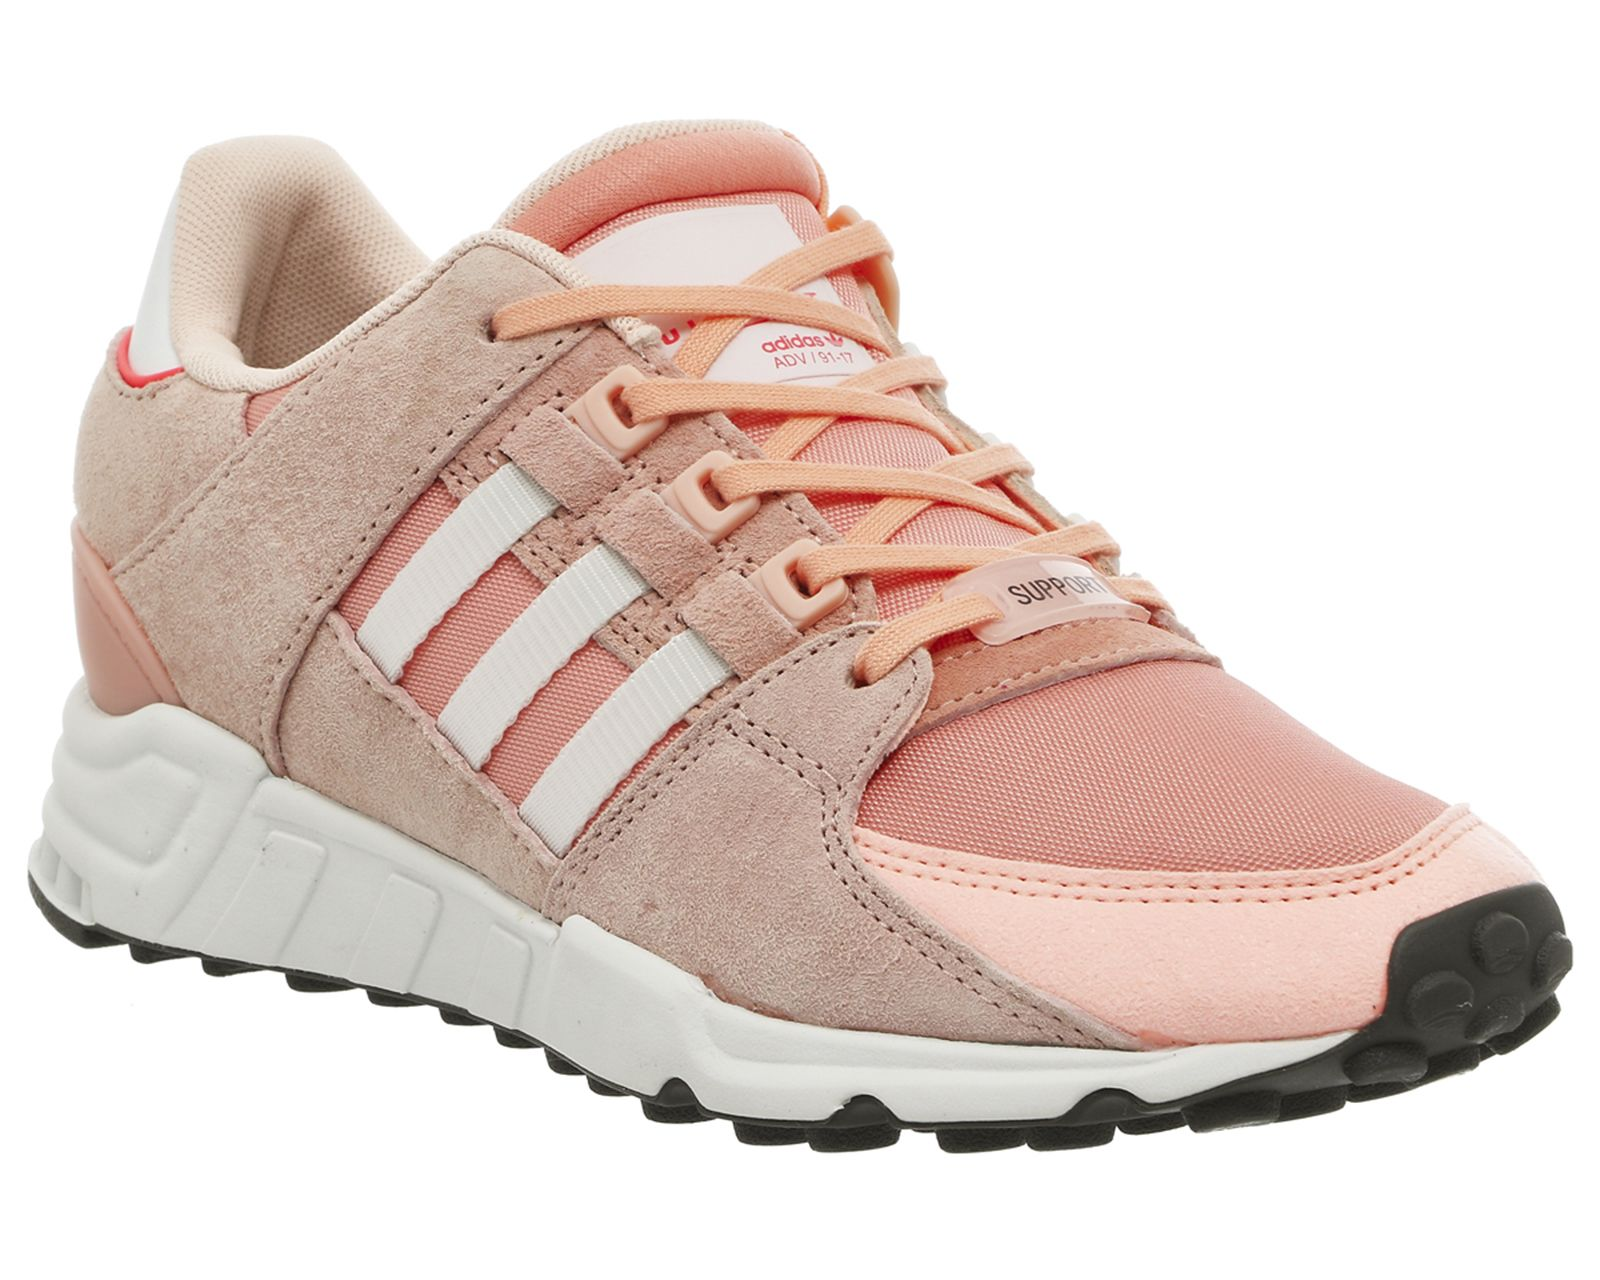 info for 71c2d f18e1 Adidas Eqt Support Rf Haze Coral White